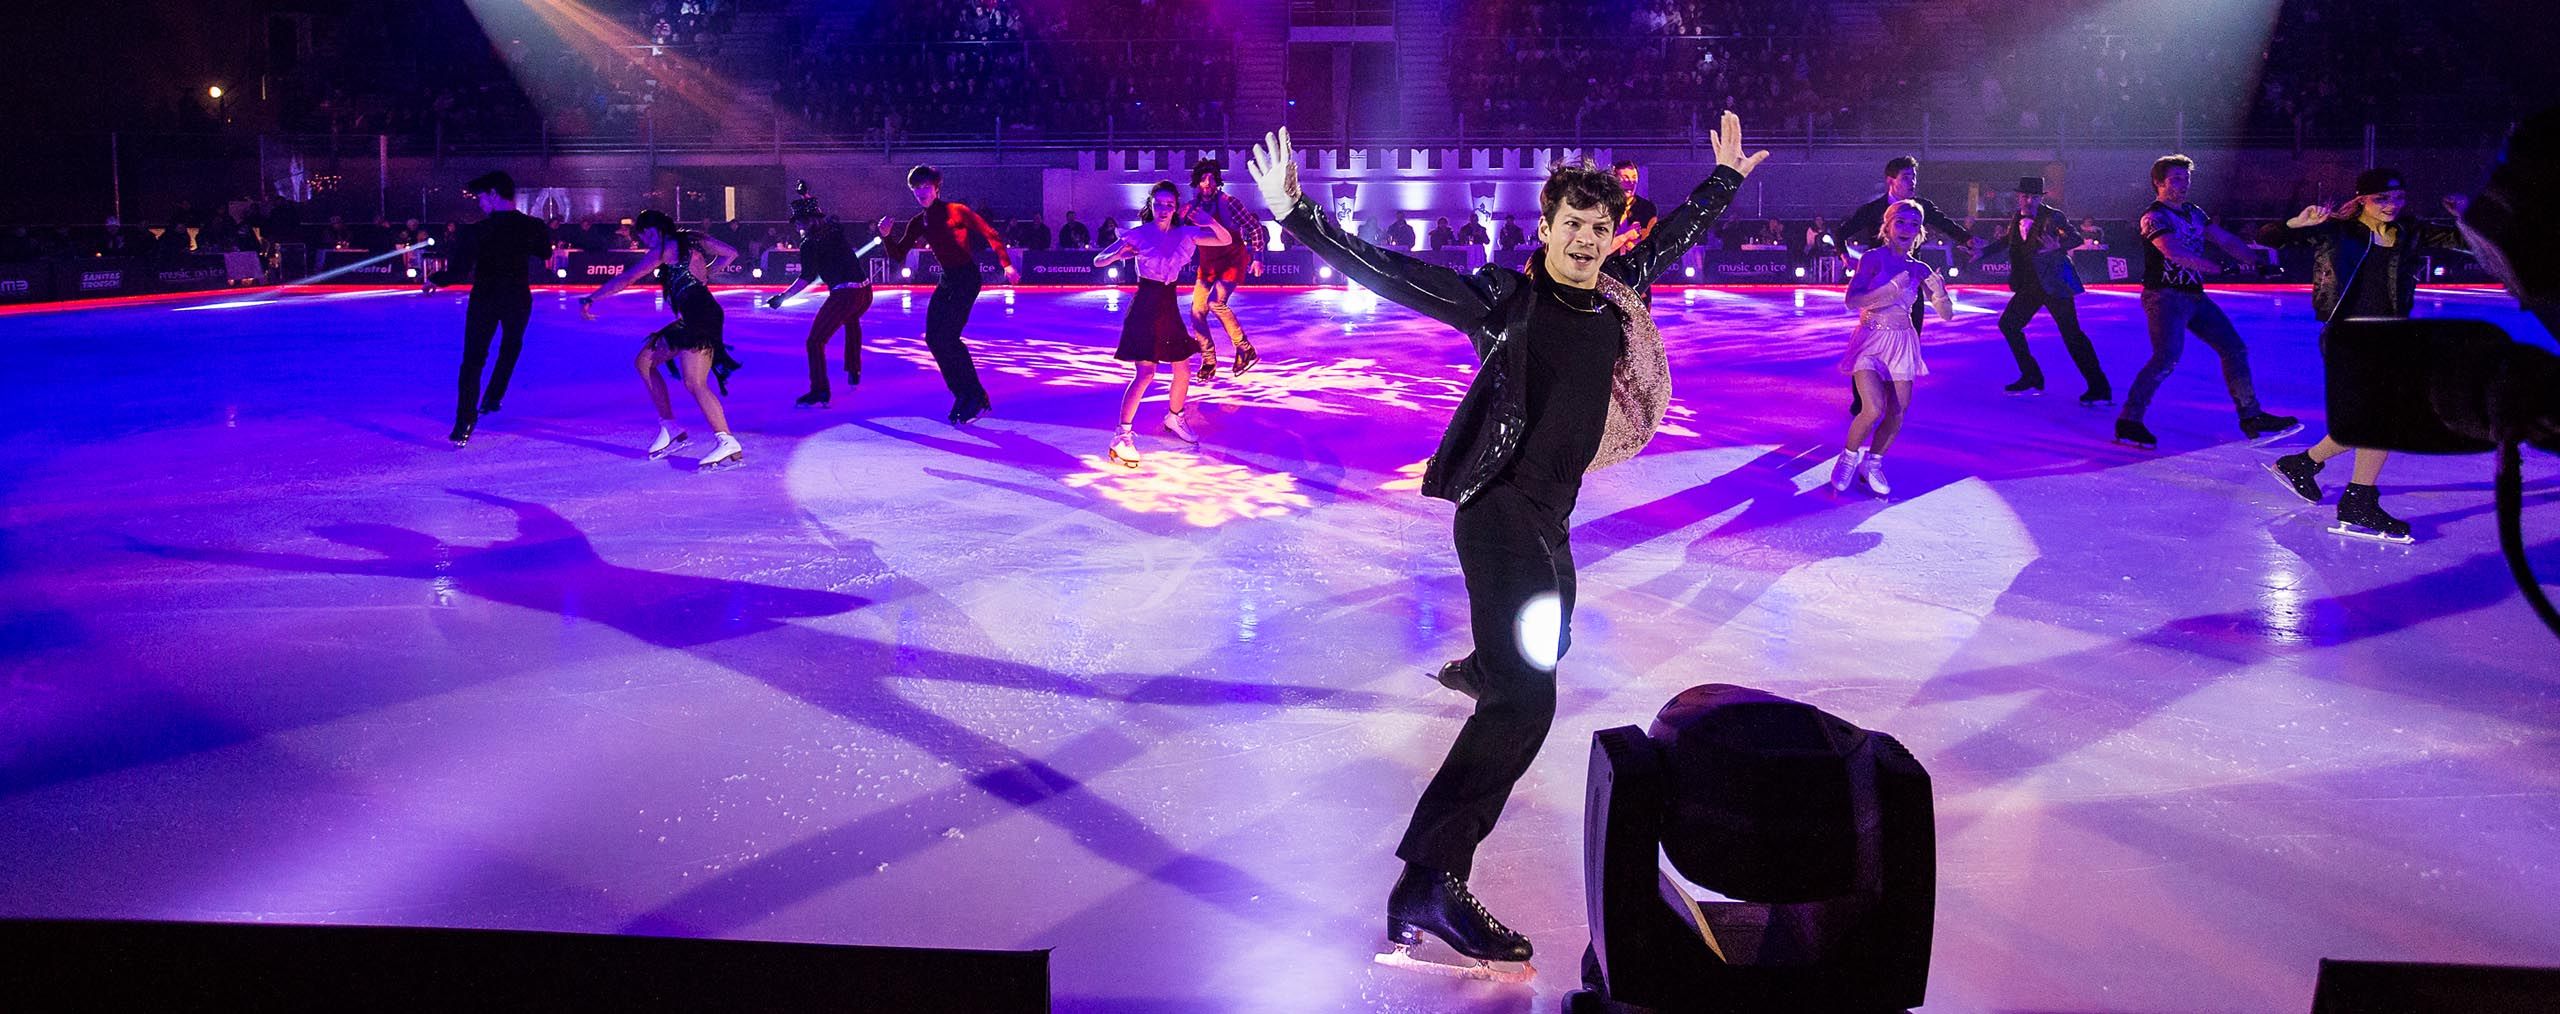 Cast of Music on Ice Stephane Lambiel